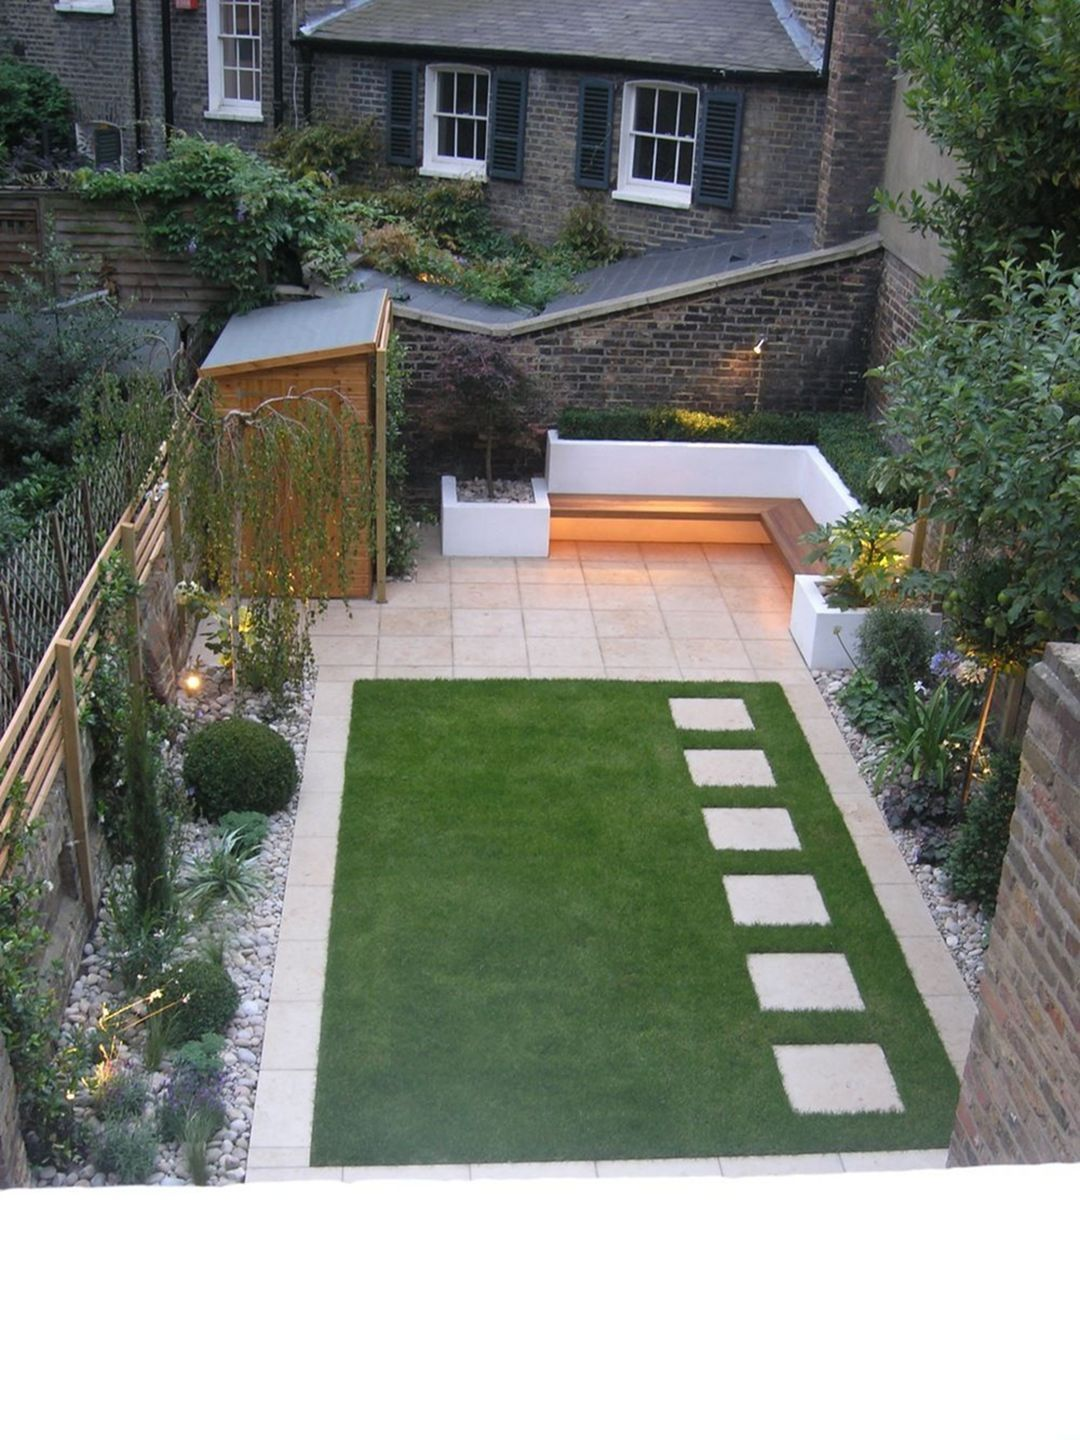 Low Cost Gorgeous Small Garden Design Ideas 22014 | Back ... on Low Cost Patio Ideas id=18696